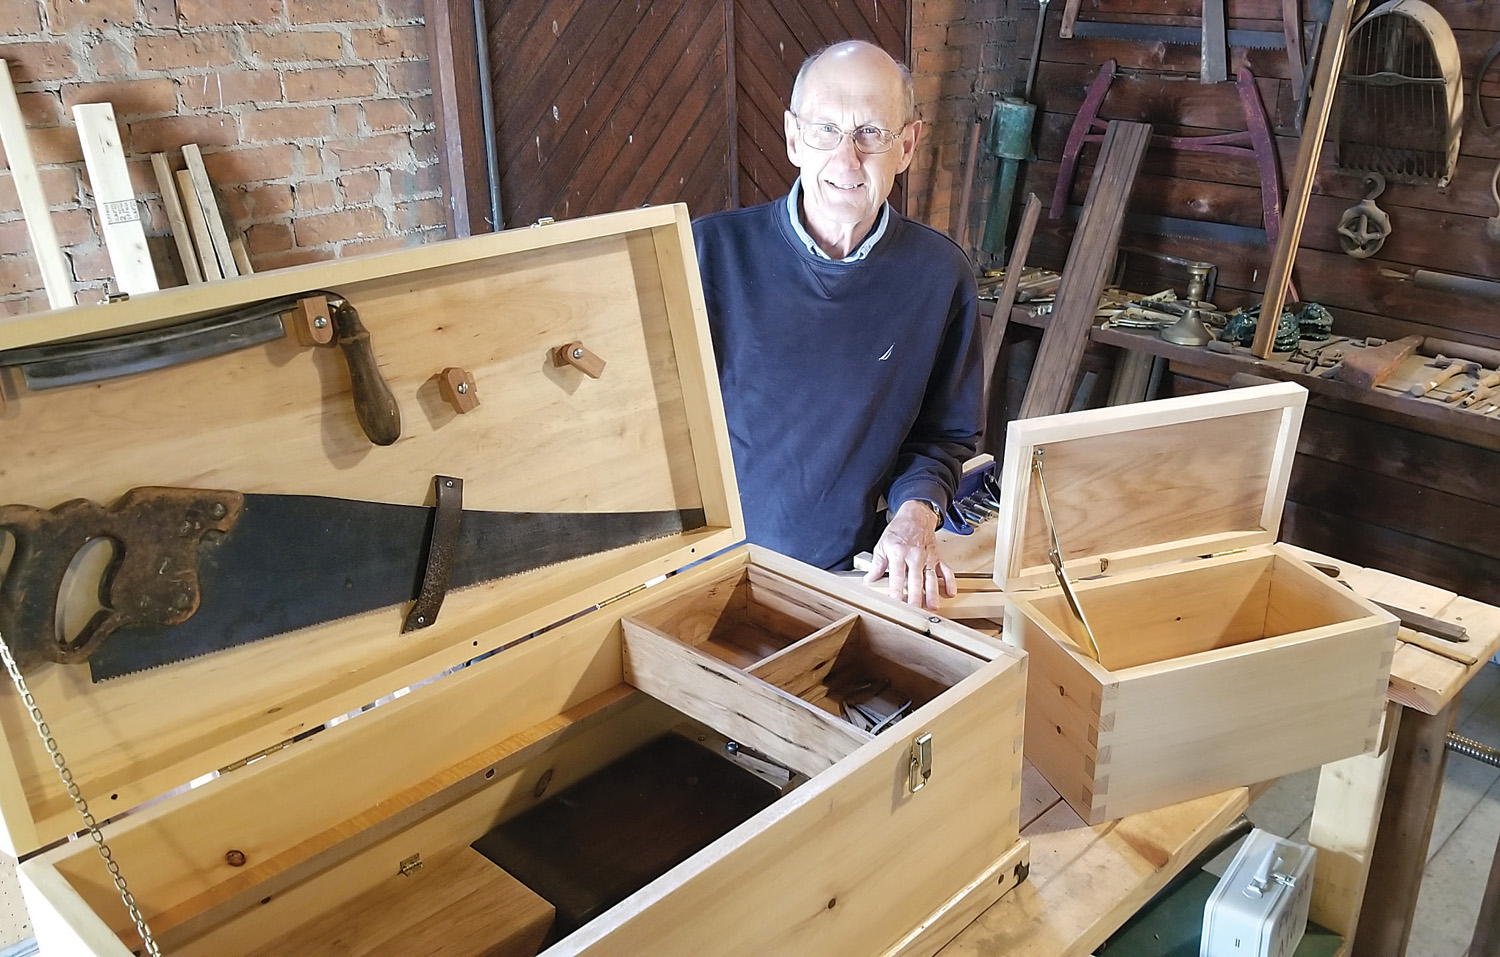 Gordy Fox stands with two model boxes that Carriage House Kids can build and take home in this summer's class on old-fashioned tools and carpentry. The shop is upstairs in the Carriage House on the Morgan-Manning House property. Photo by Dianne Hickerson